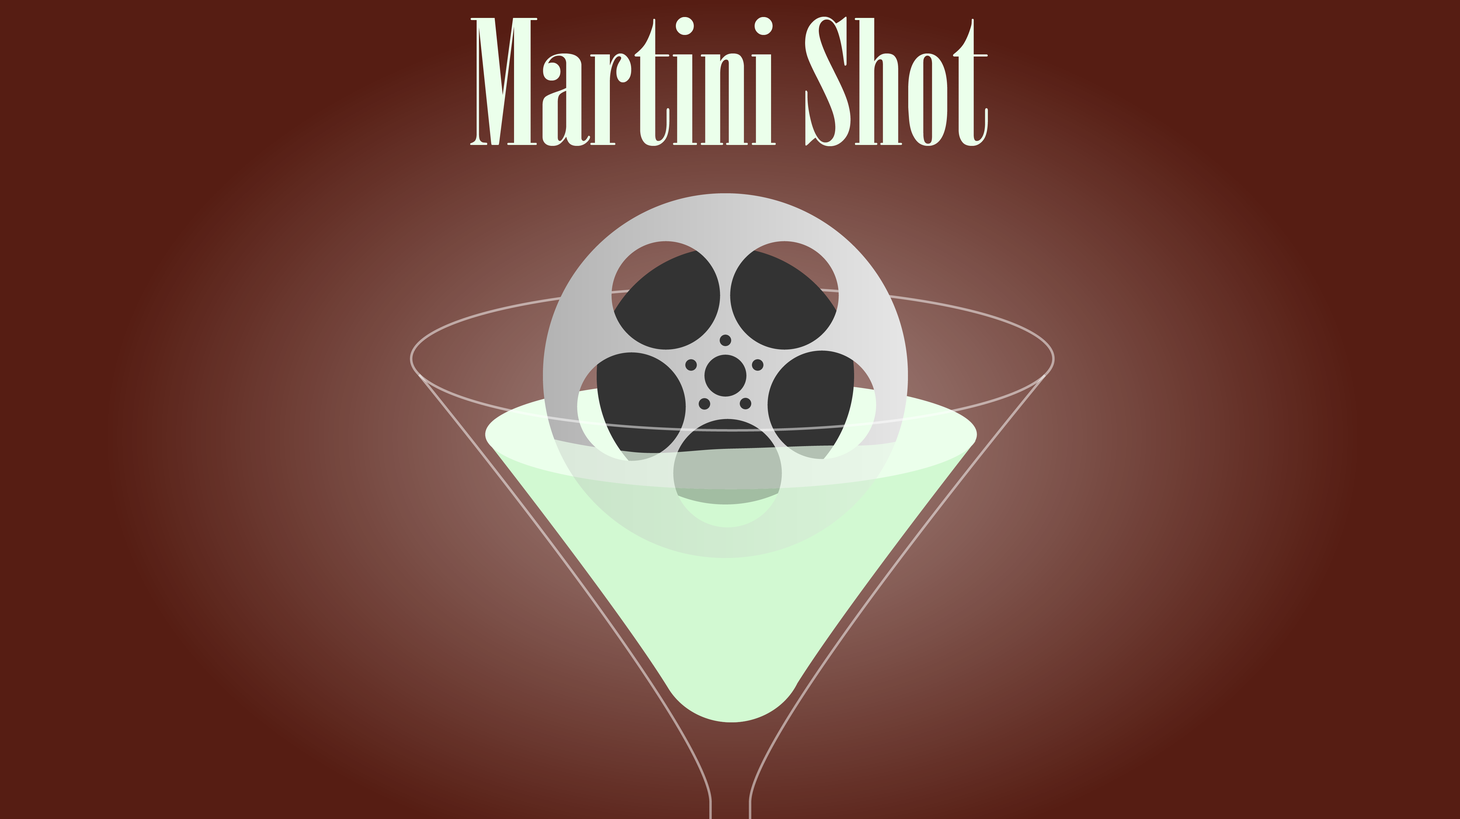 This is Rob Long and on today's Martini Shot I talk about what happened when my tailor died and his shop was rebooted and remodeled and was better in almost every way except one: it was missing something, like a lot of reboots.